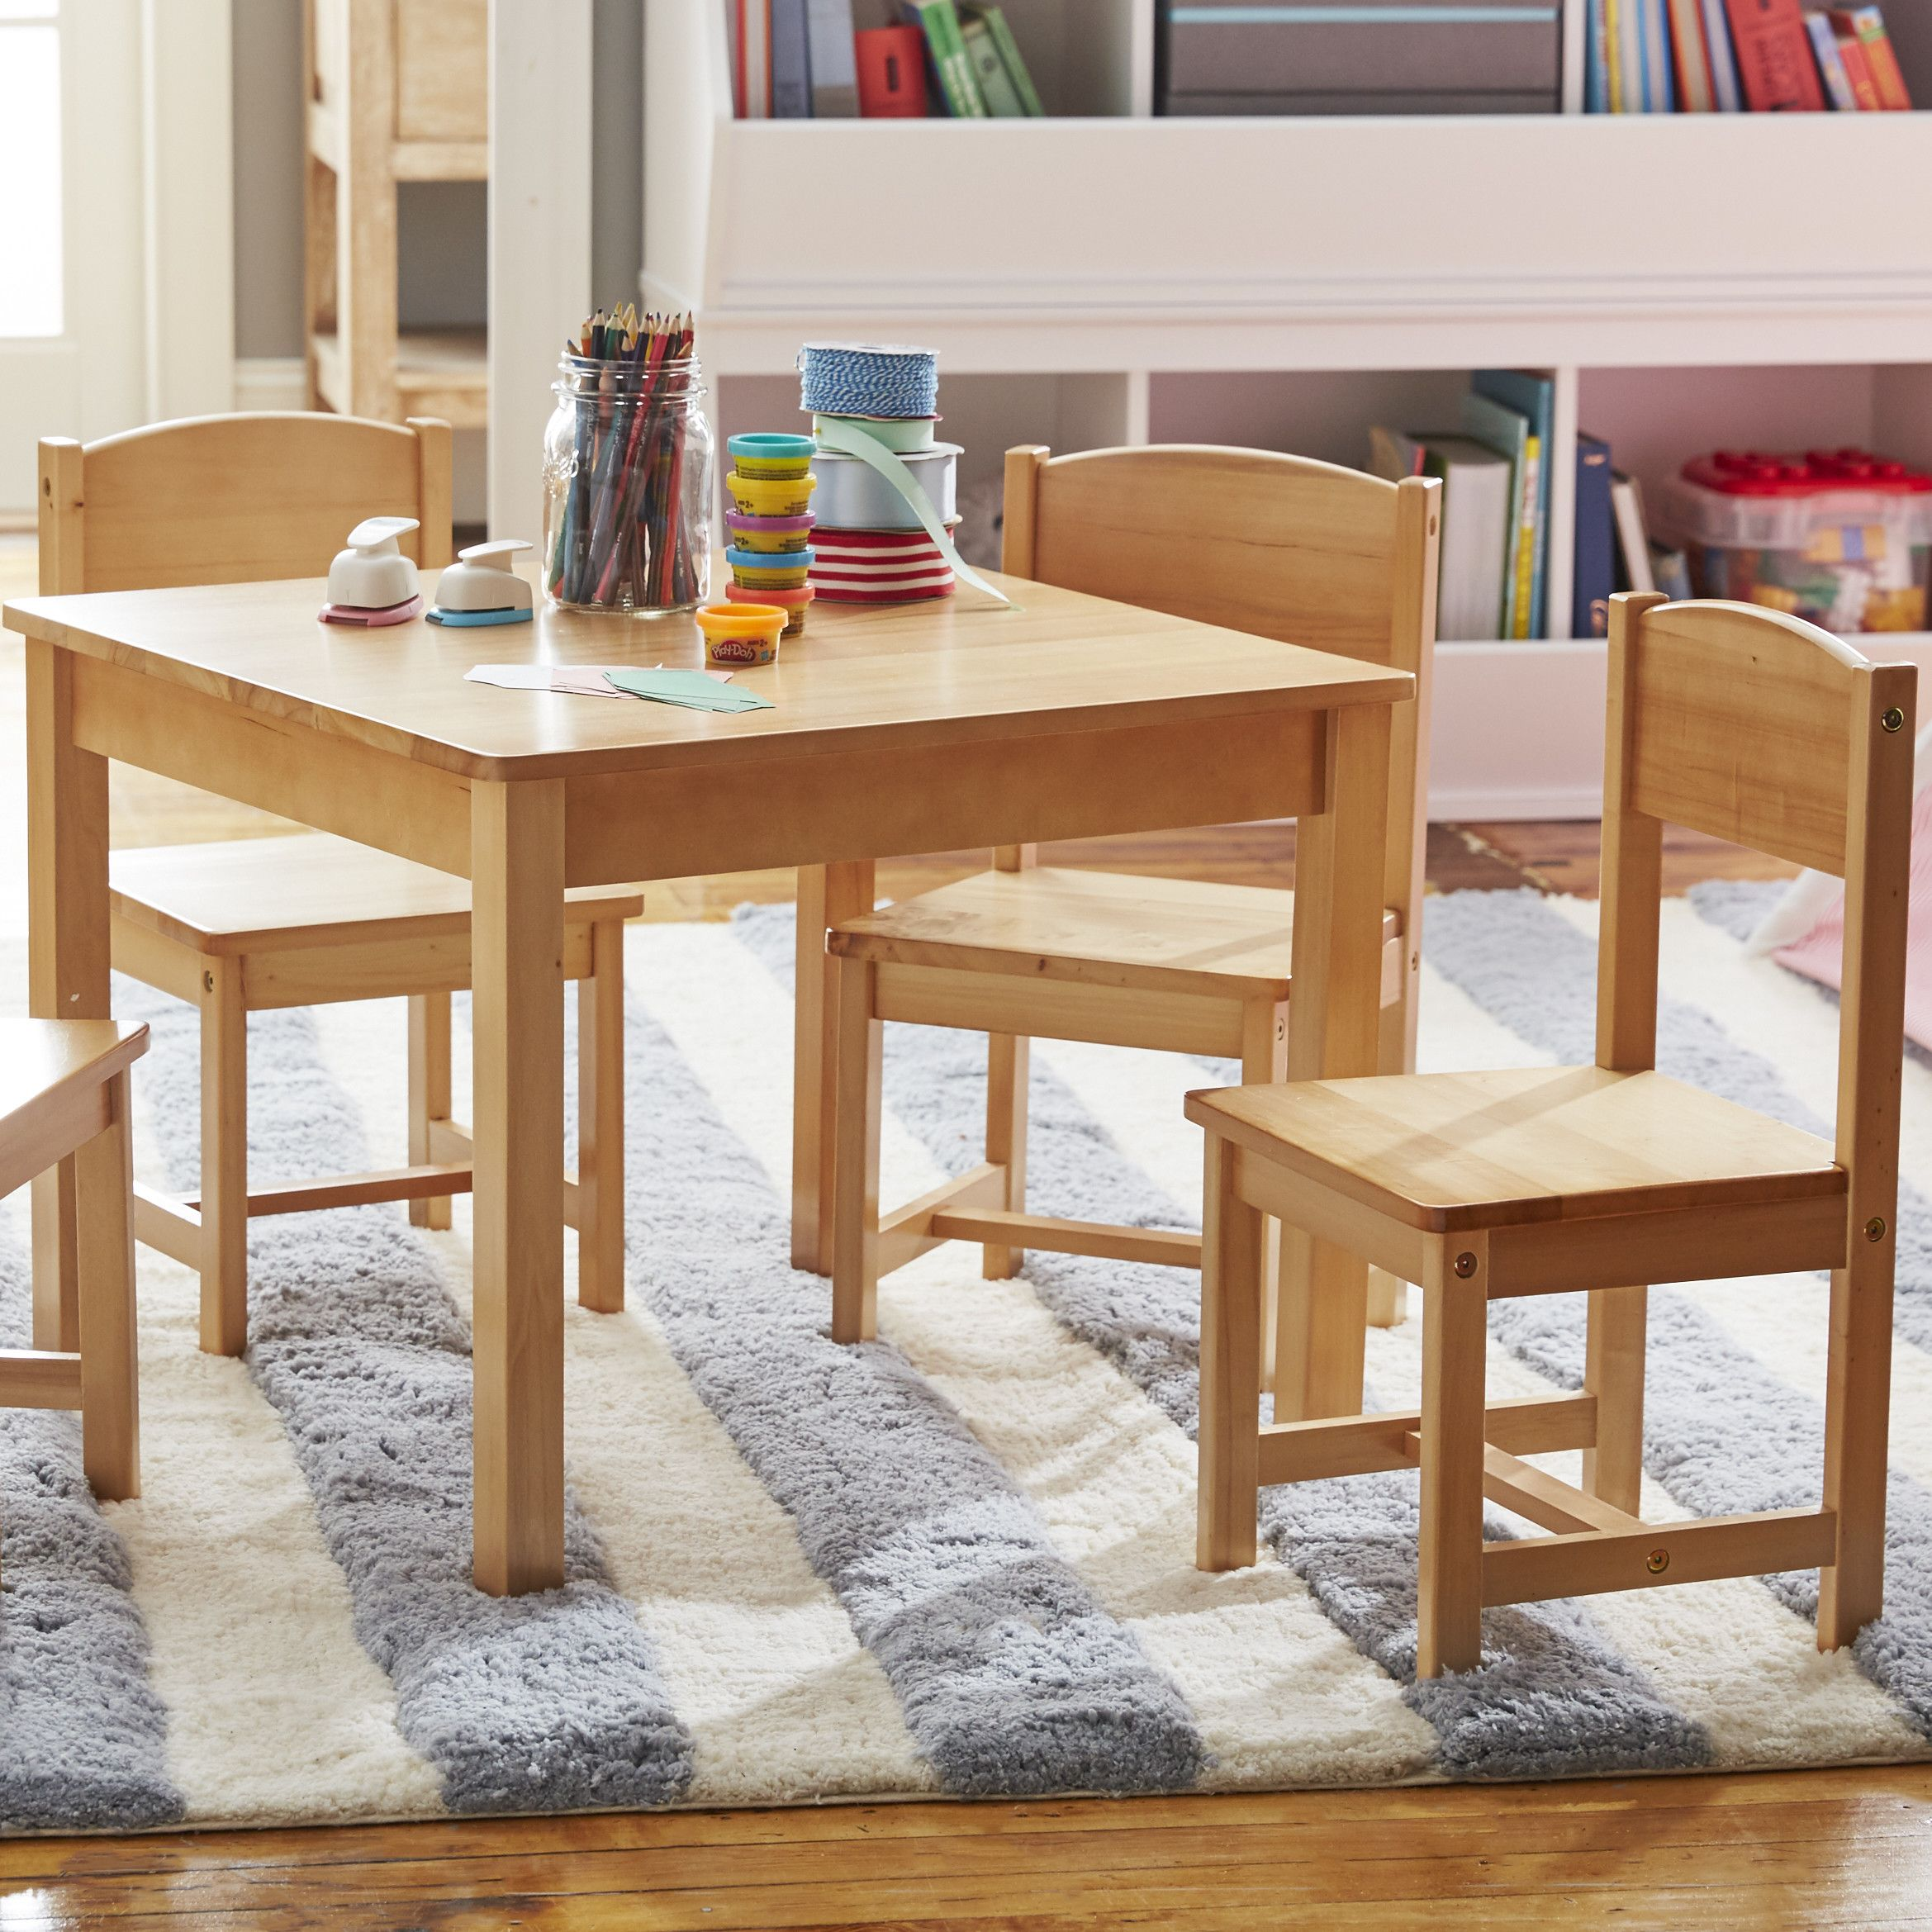 Farmhouse Kids 5 Piece Square Table and